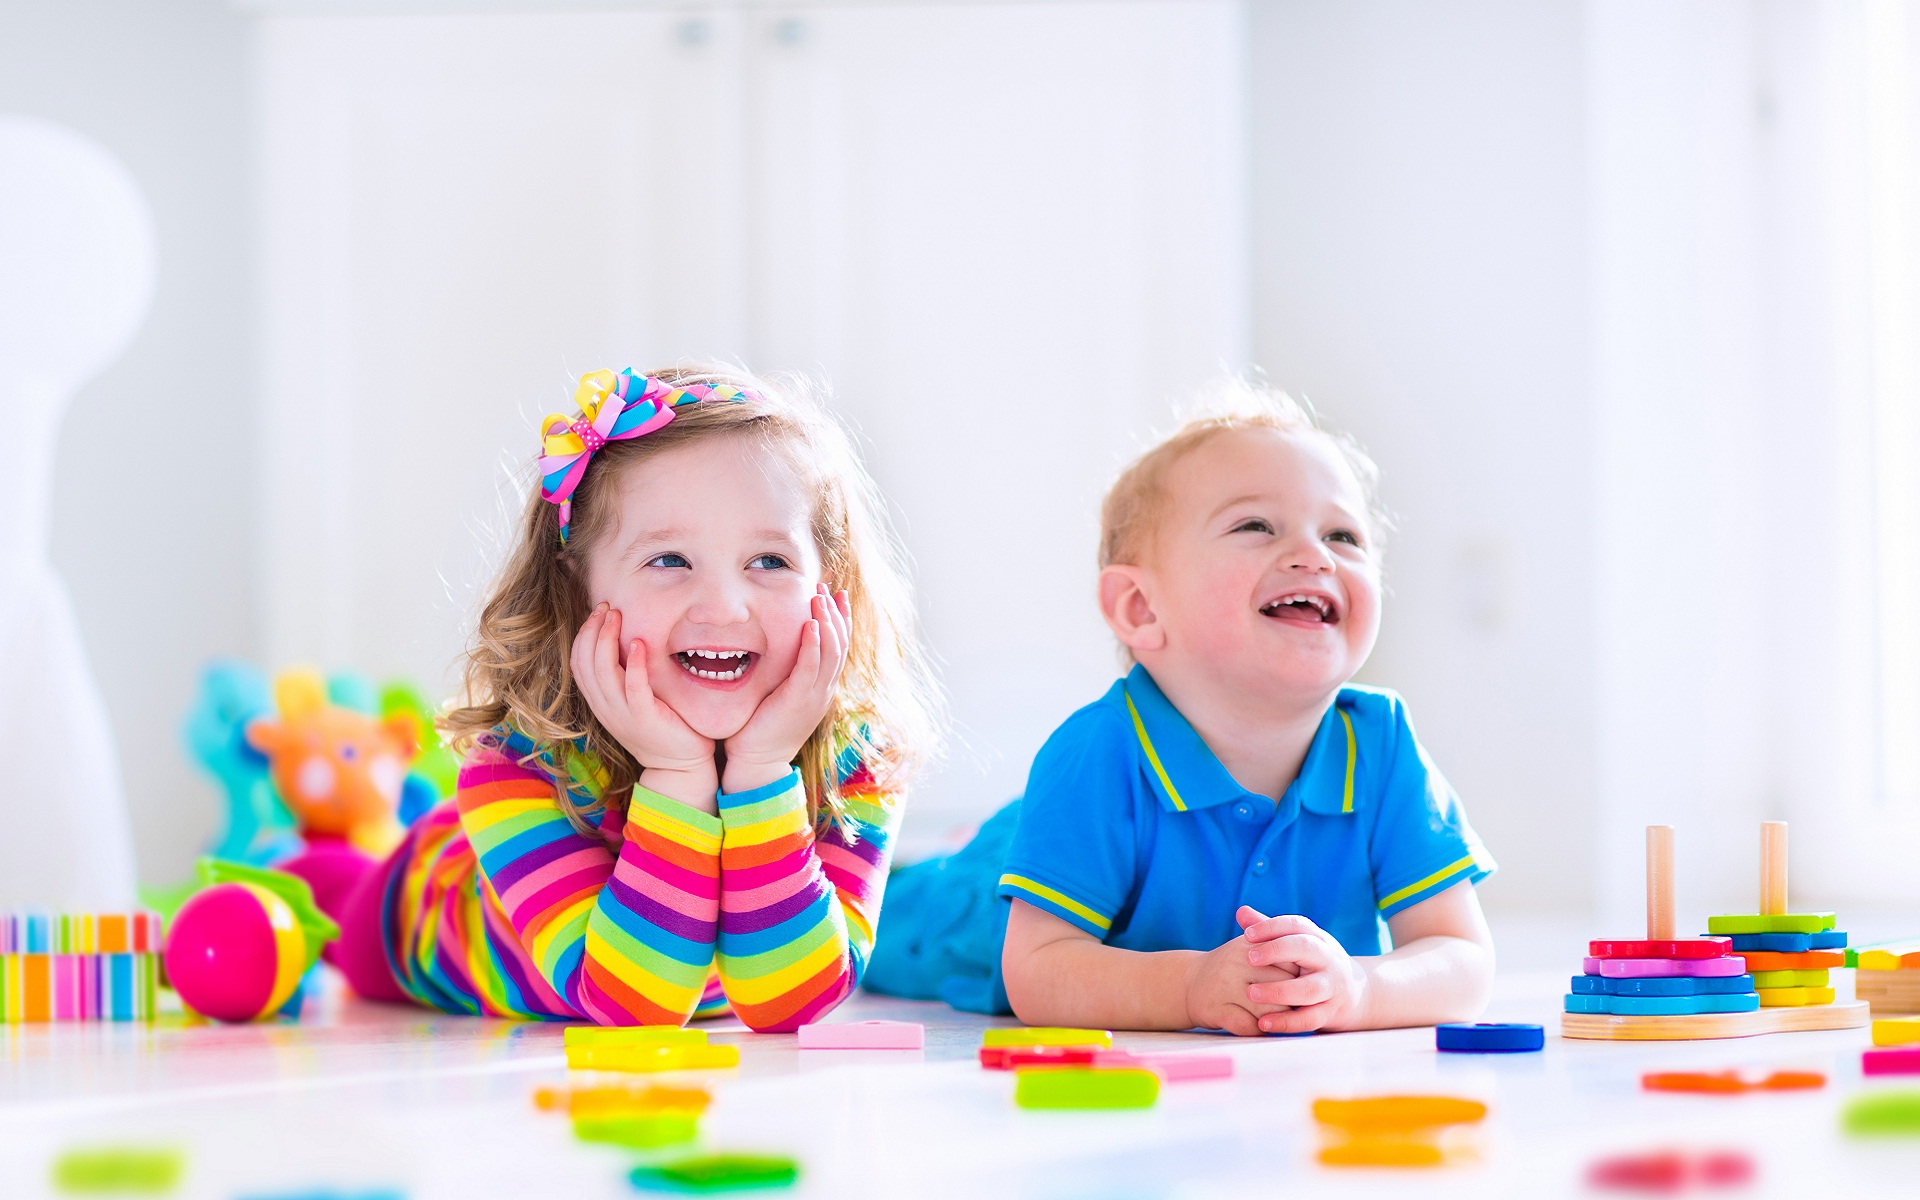 Happy Kids Wallpaper